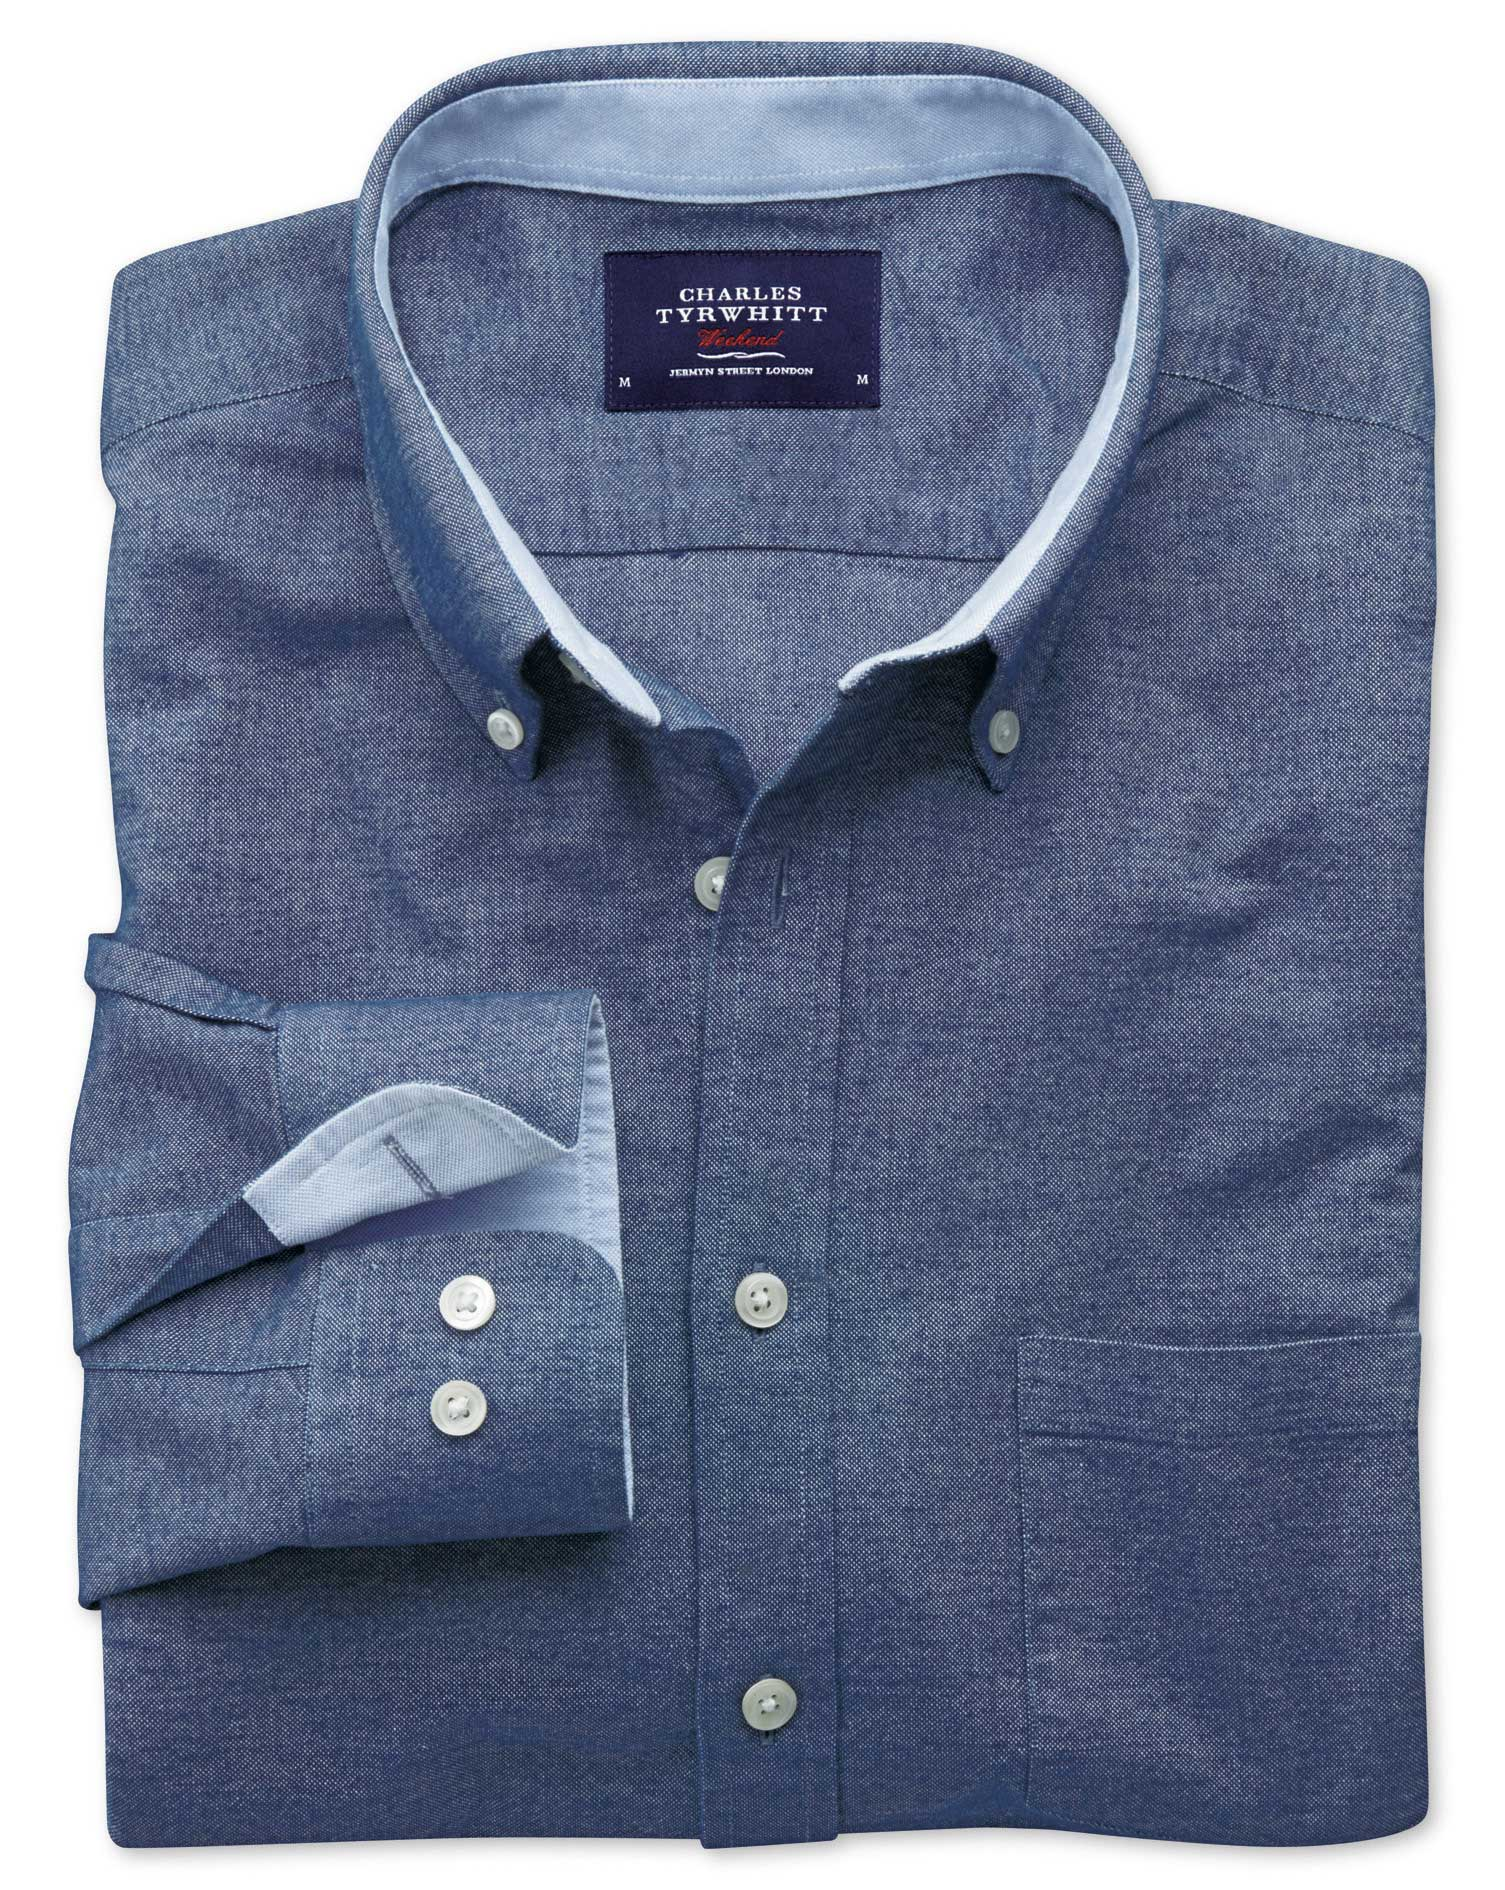 Extra Slim Fit Blue Washed Oxford Cotton Shirt Single Cuff Size Small by Charles Tyrwhitt